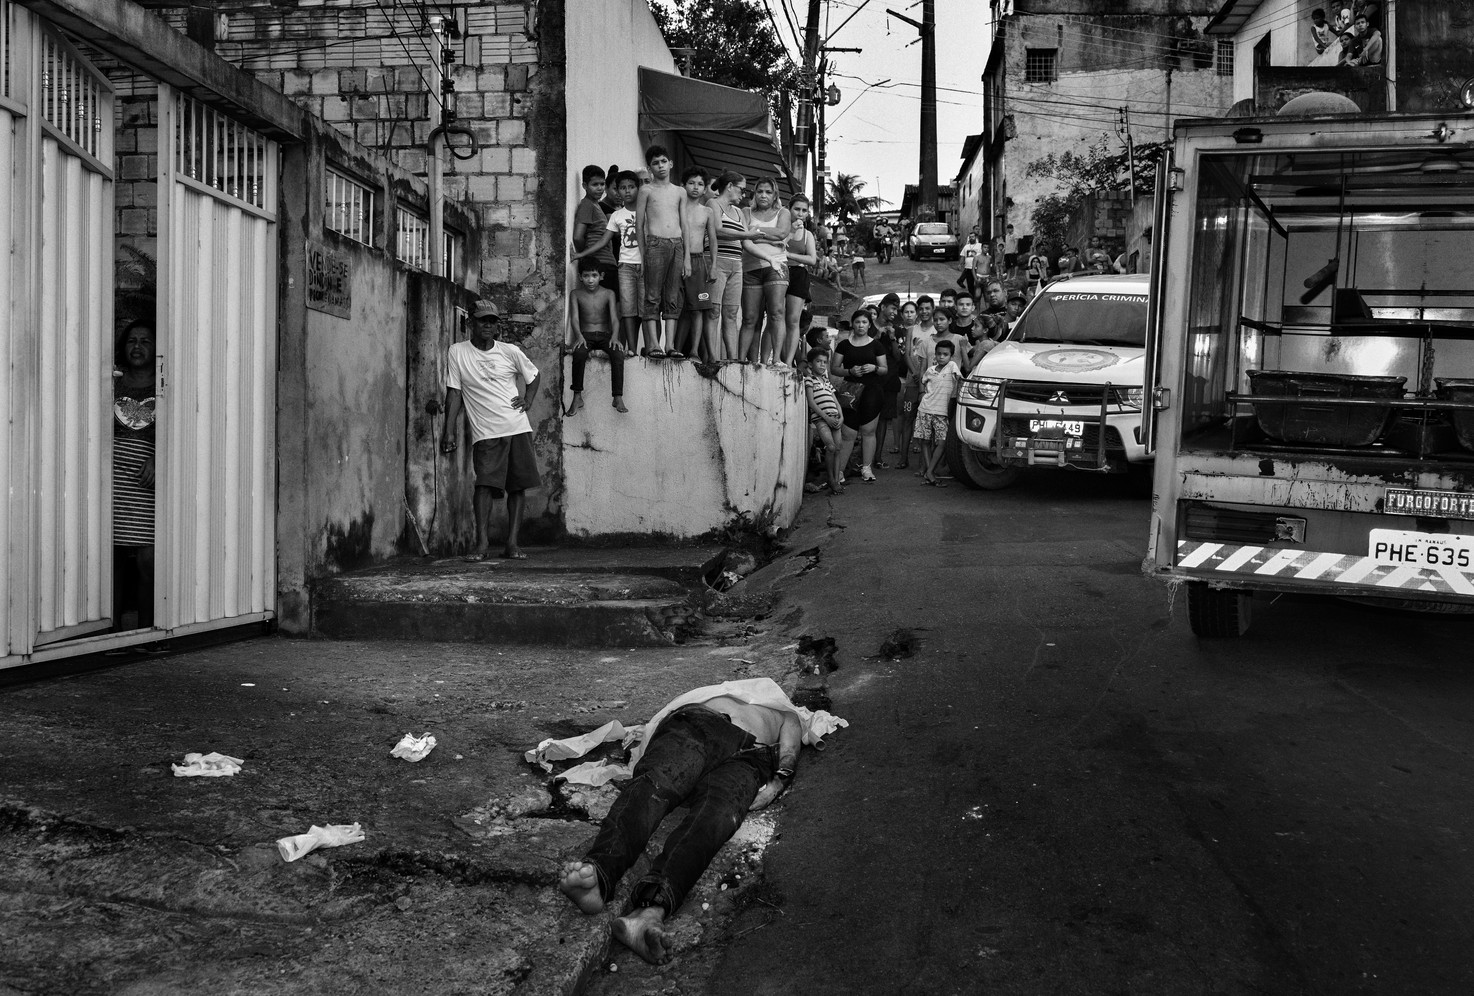 Homicide victim in Manaus, who had recently been released from jail, wears an electronic ankle tag. He was shot close to his home. With a population of just over two million, the city regularly has upwards of five murders a day. According to local security officials, the majority of murders in the city are connected to the drug trade. Victims are overwhelmingly young men of colour with little schooling from poor neighbourhoods killed with small firearms sold on the local black-market.